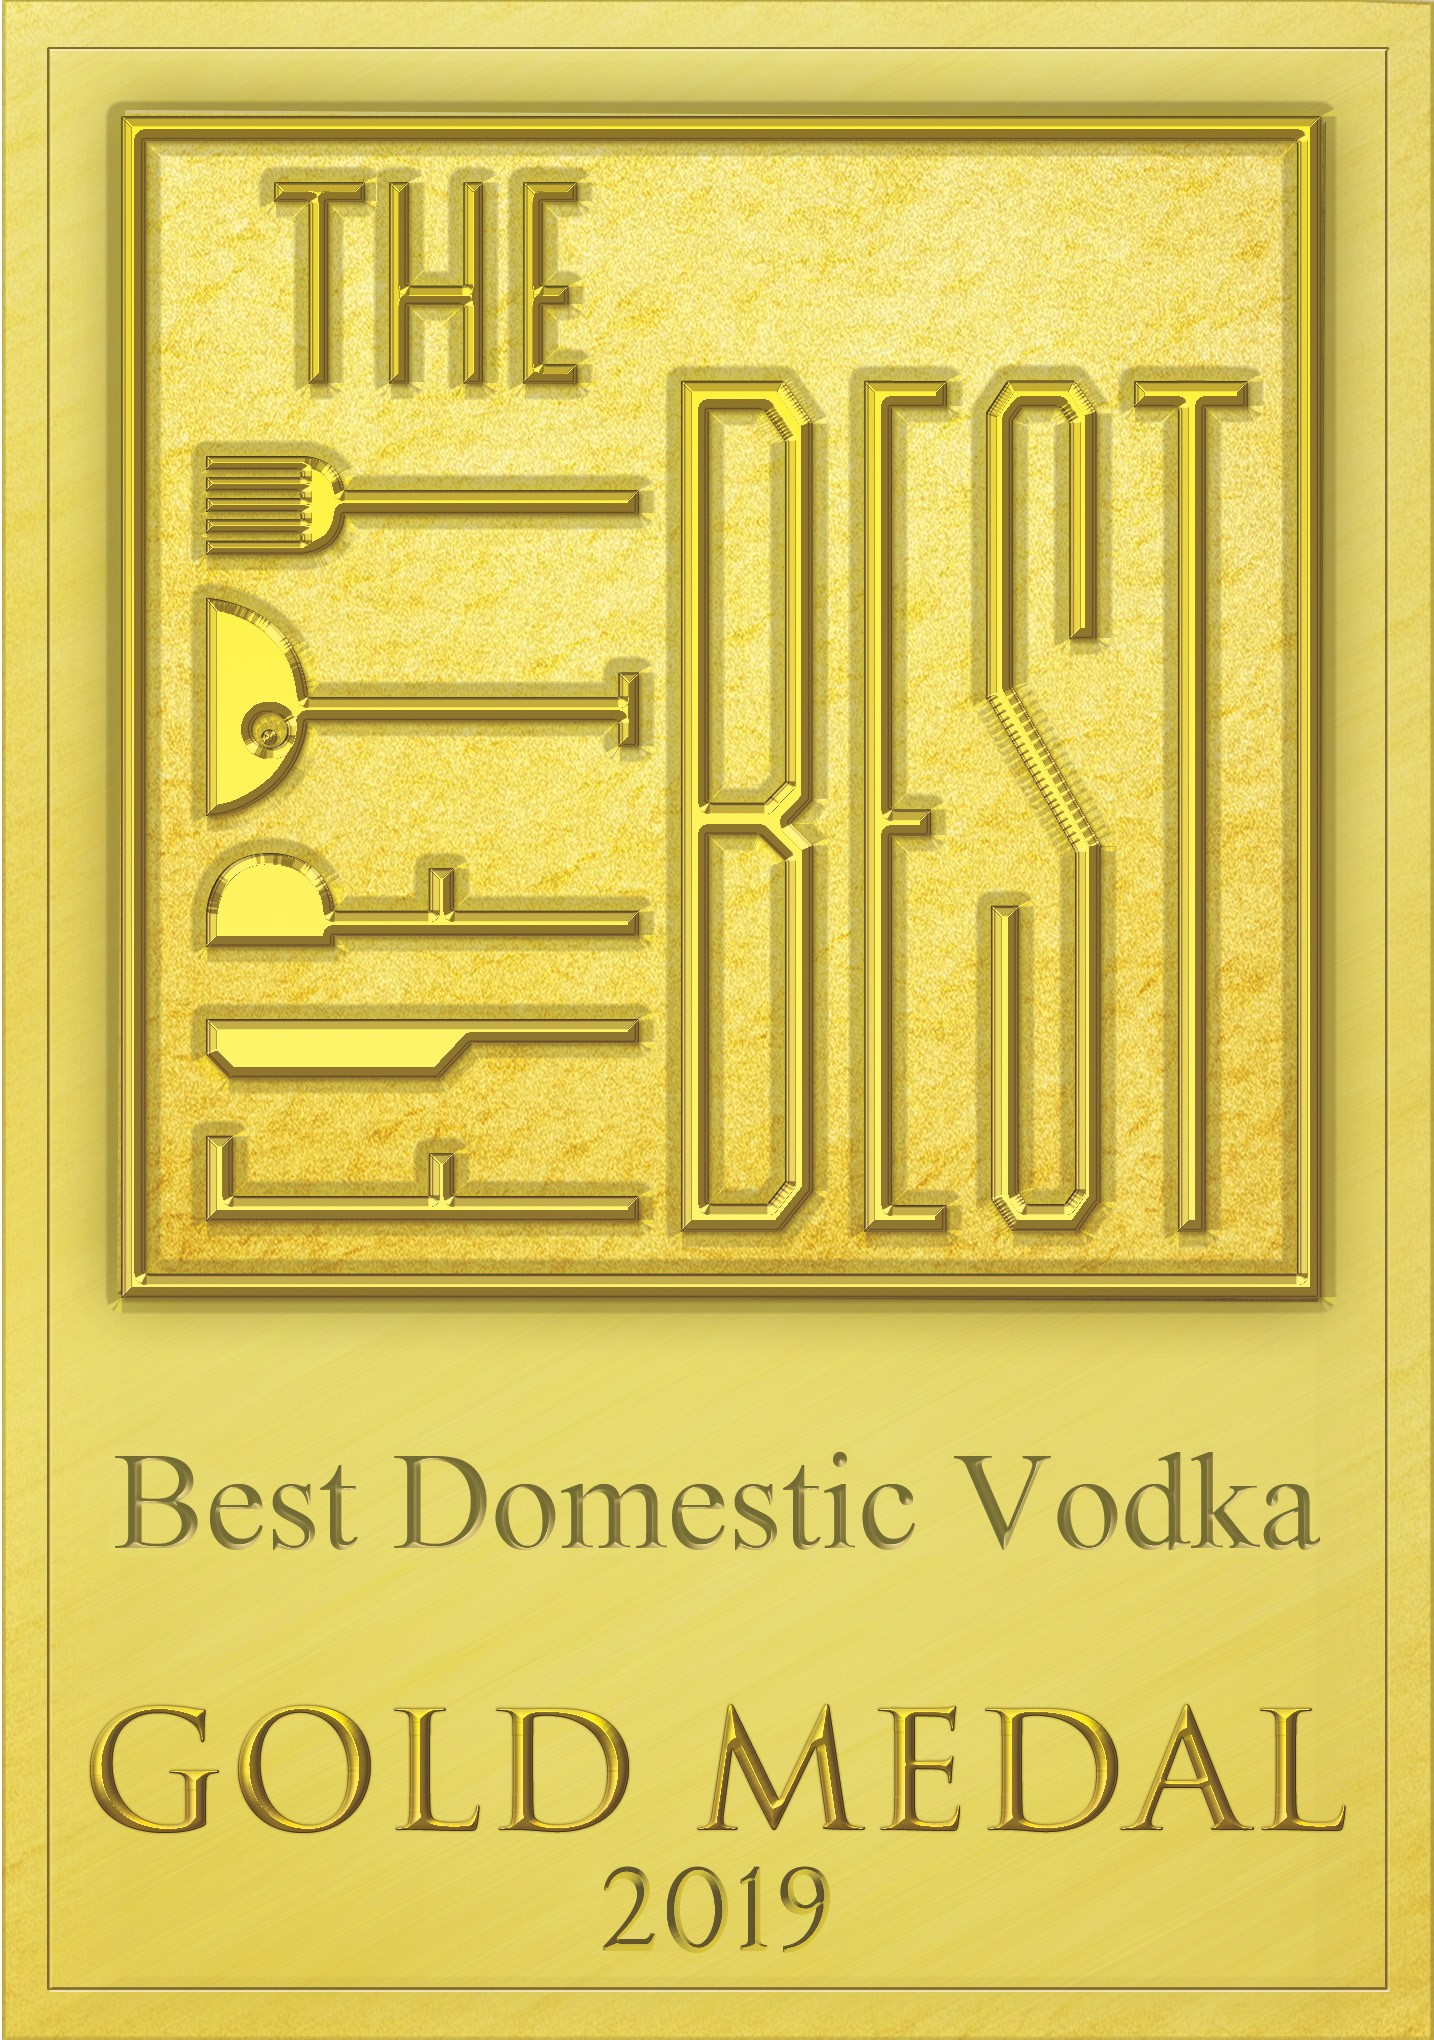 "Wild Rag Mesquite Bean Vodka Wins the GOLD in New York's 2019 ""The Fifty Best"" Domestic Vodka Competition!The Distiller's Specialty Premium Vodka is the only Mesquite Bean Vodka in the World! - The Judges have spoken: ""Nose: Caramel, butterscotch candy, buttery, vanilla, cream, cocoa nibs, powdered sugar, cantaloupe, sweet grain, celery salt, nuts, potato skin, wet stone, savory.Palate: Milk chocolate, butterscotch, sweet cream, sugar cane, sweet pastries, sweet corn, melon, anise, pepper, spicy, rum-like, good body, crisp, mouth filling.Finish: Cocoa, bakery, coffee, kitchen spice, green pepper, creamy, soft, silky, smooth, deliciousness.""Click here to learn more."